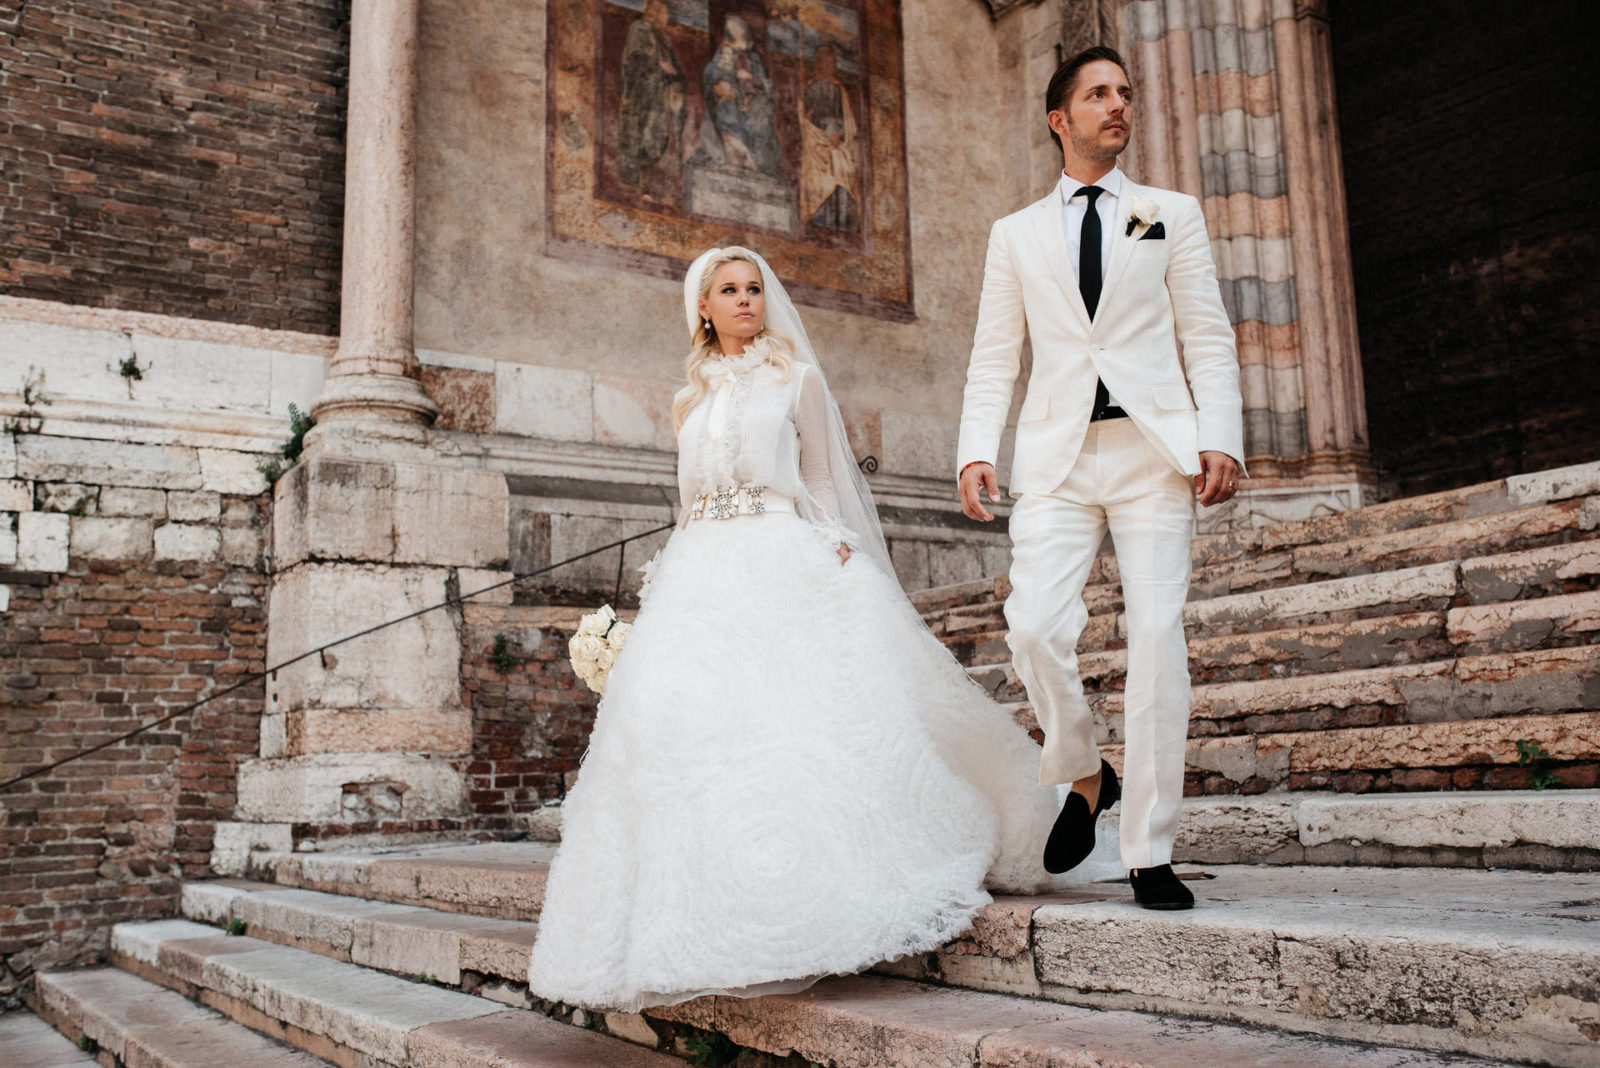 julia_manuel_051_italy_wedding